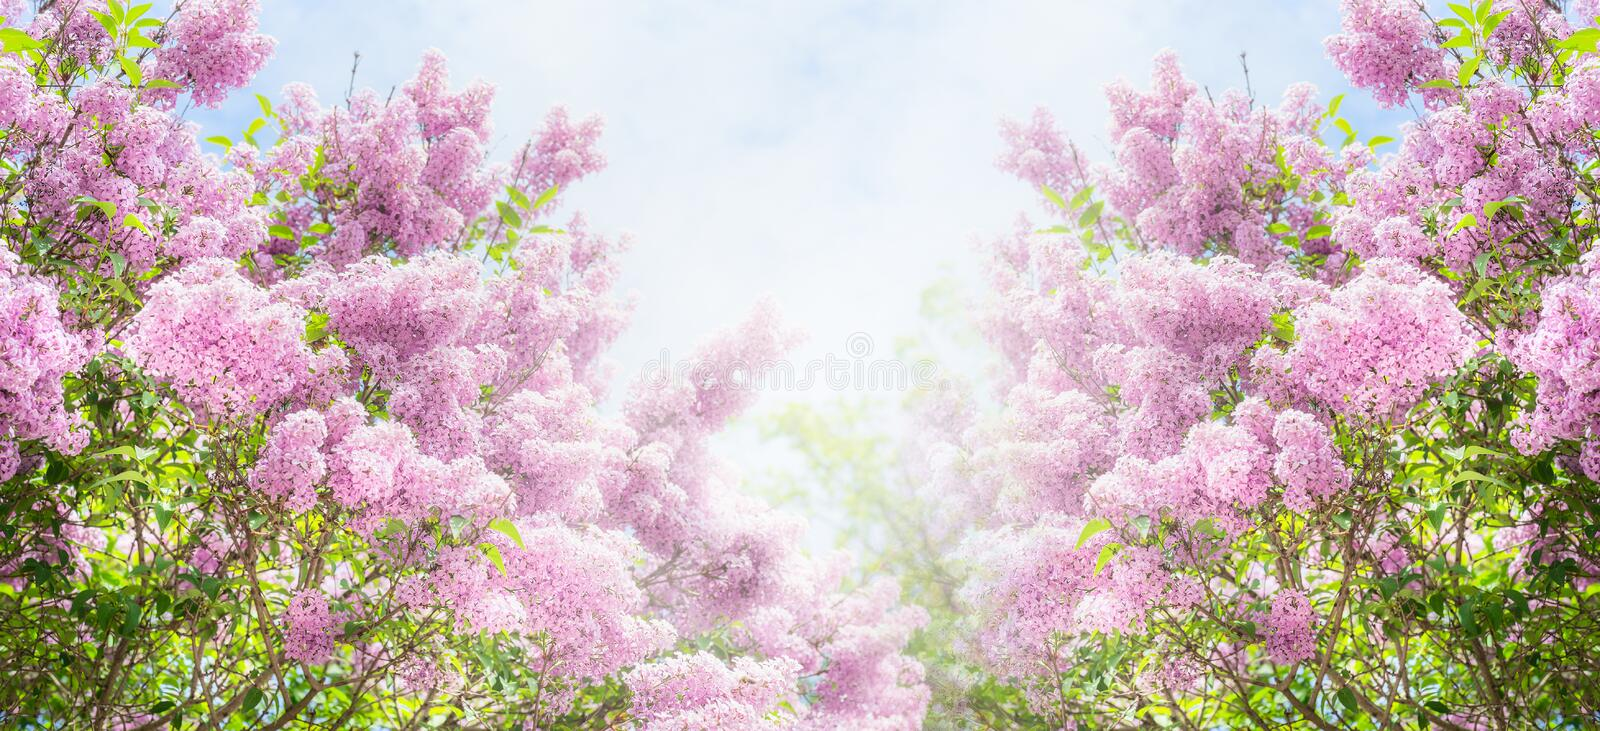 how to cut flowers from a lilac bush